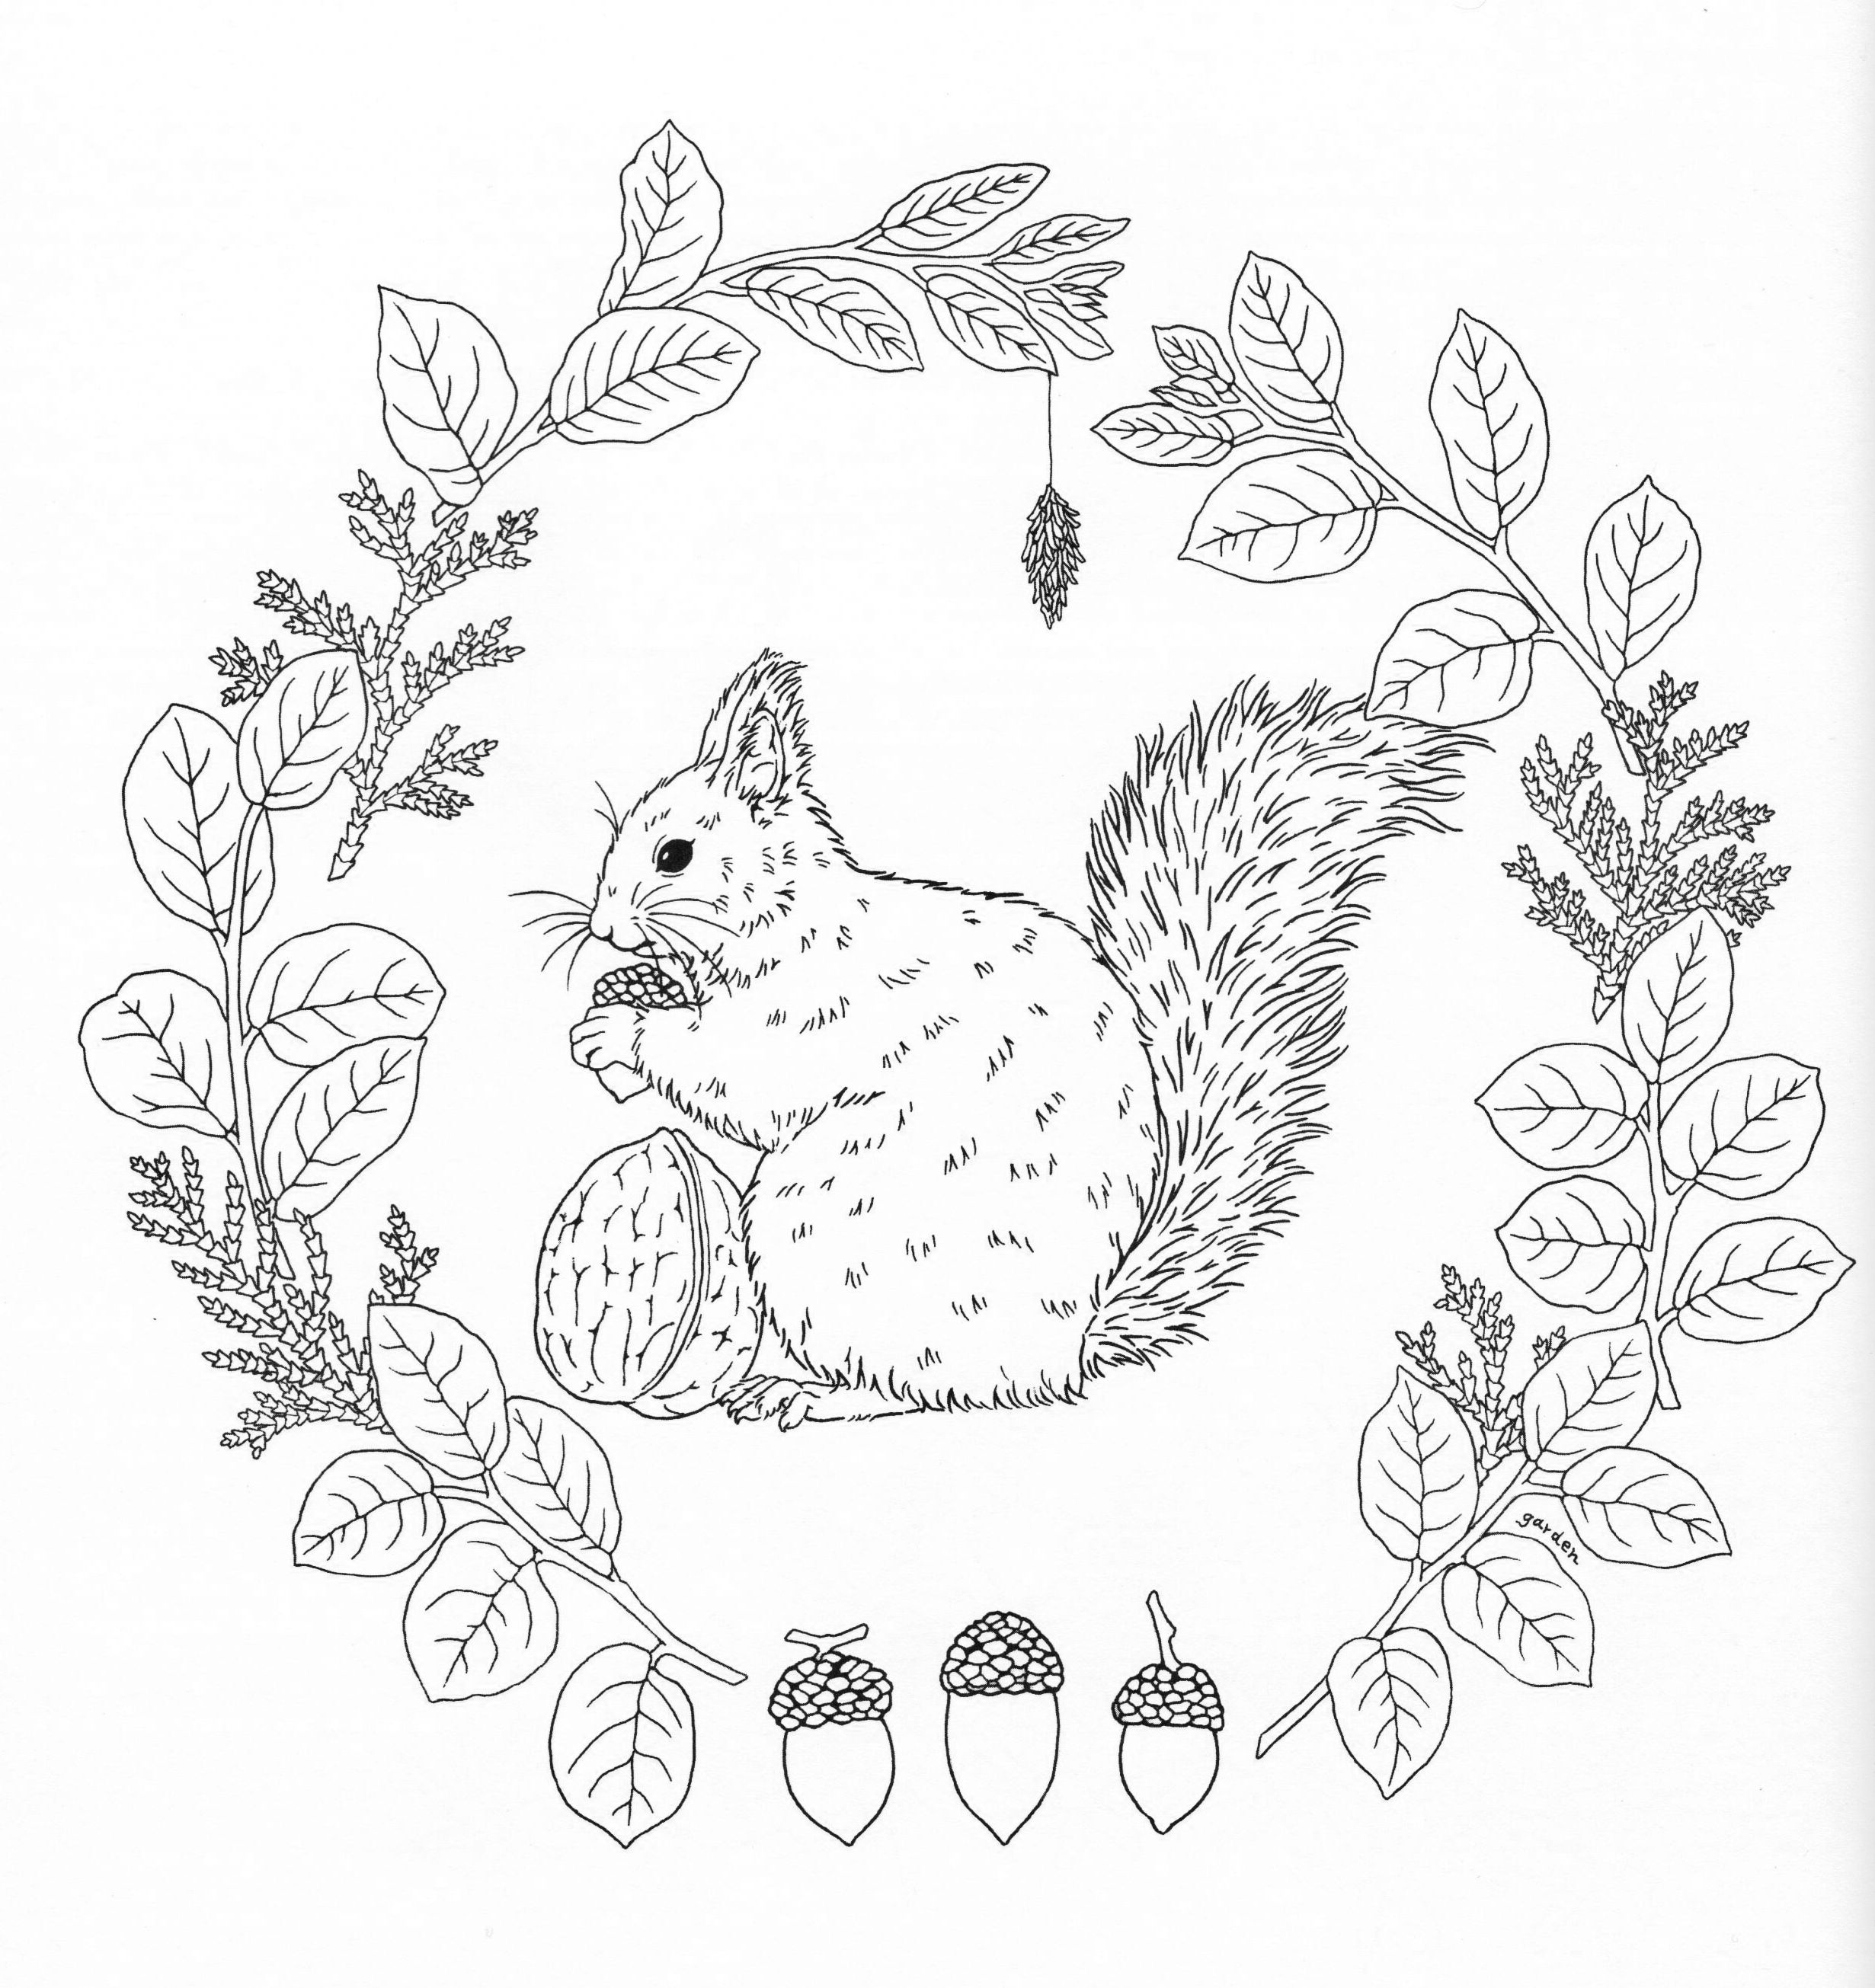 coloring nature images nature coloring pages educational fun kids coloring images nature coloring